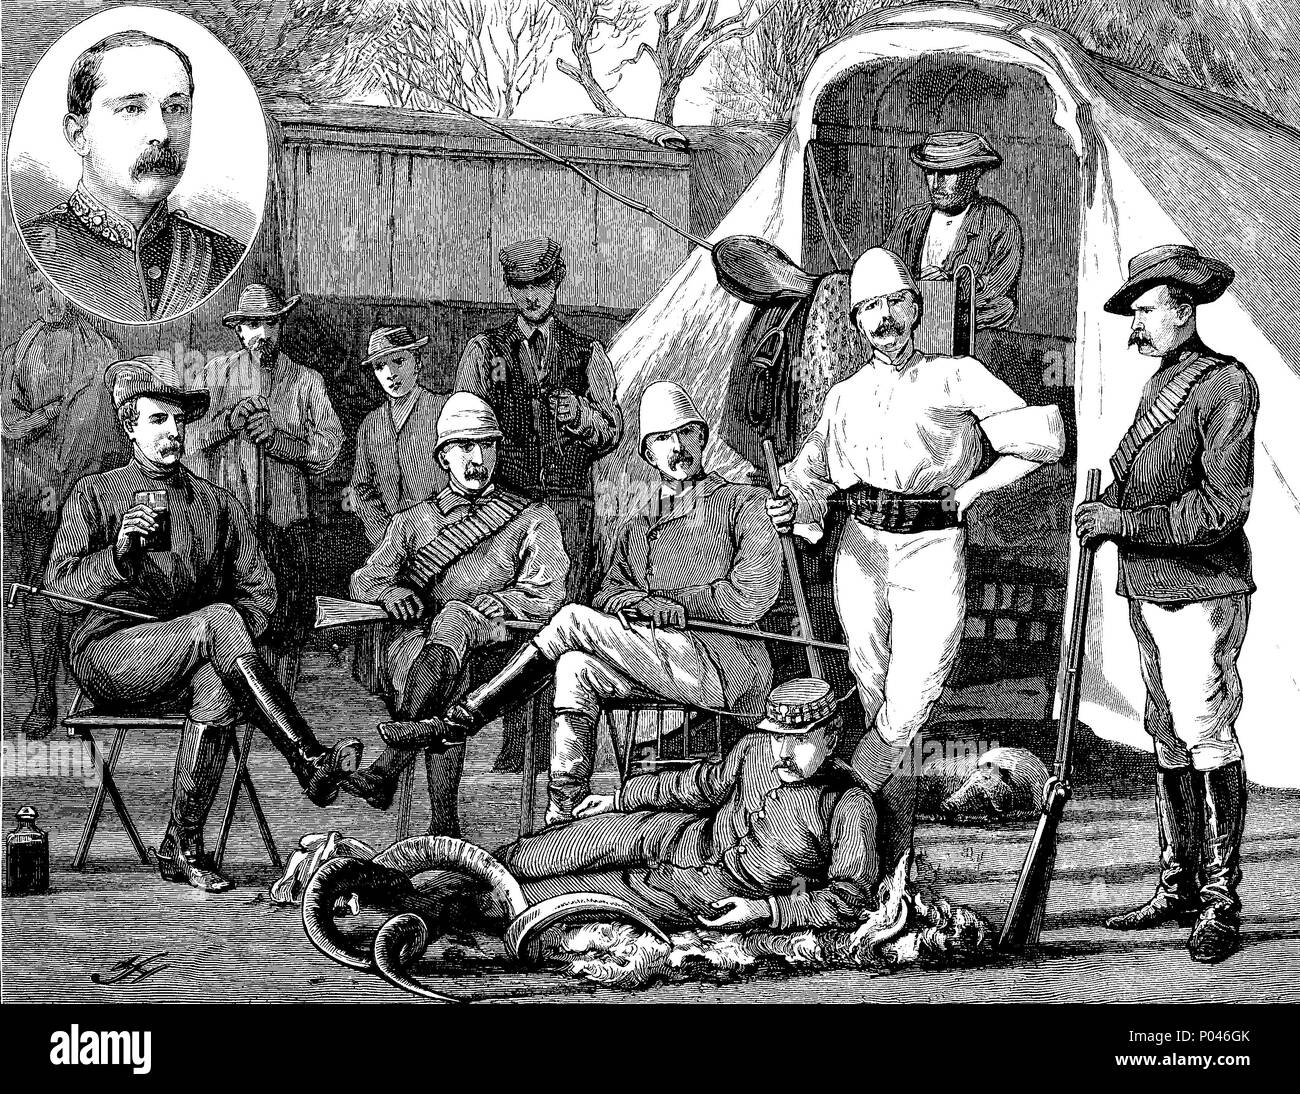 The rebellion in the Transvaal, Sir W. Owen Lanyon, British administrator and his official staff. Colonel Sir William Owen Lanyon KCMG CB, 1842 - 1887, was a British colonial administrator and British Army officer, digital improved reproduction of an original print from the year 1881 - Stock Image